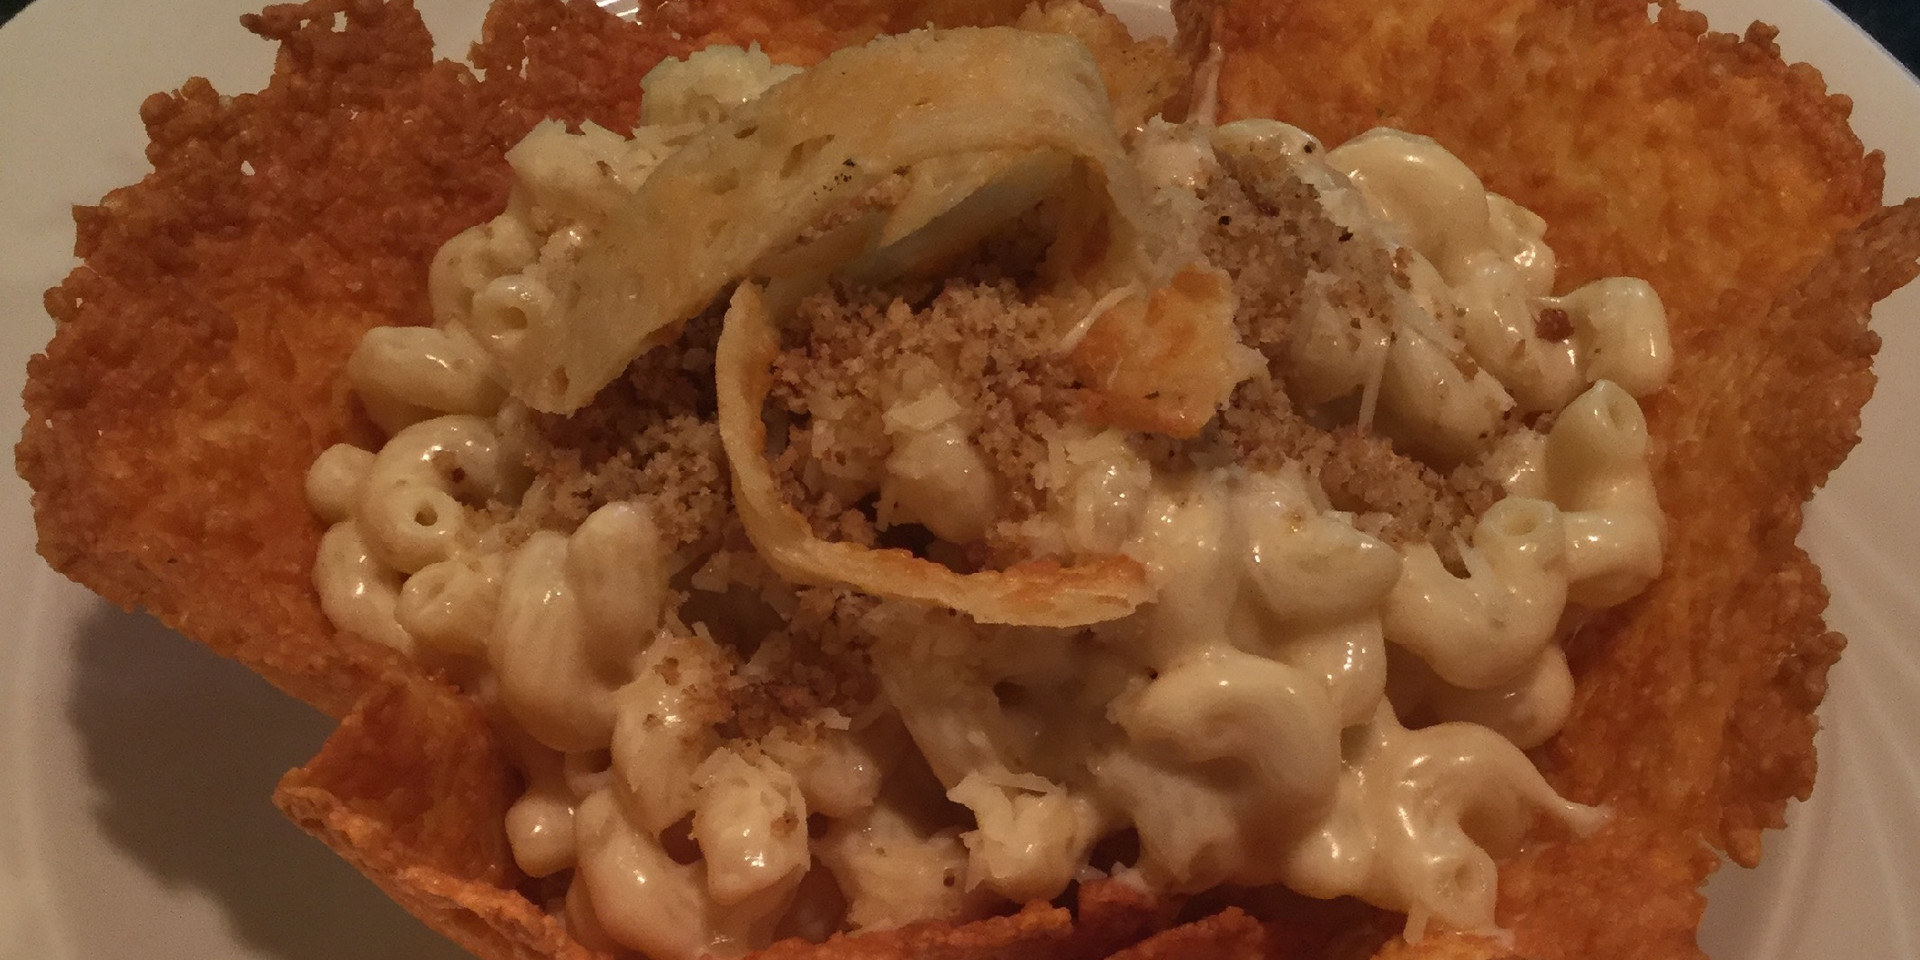 Macaroni and Cheese in a grilled Parmesan Cheese bowl